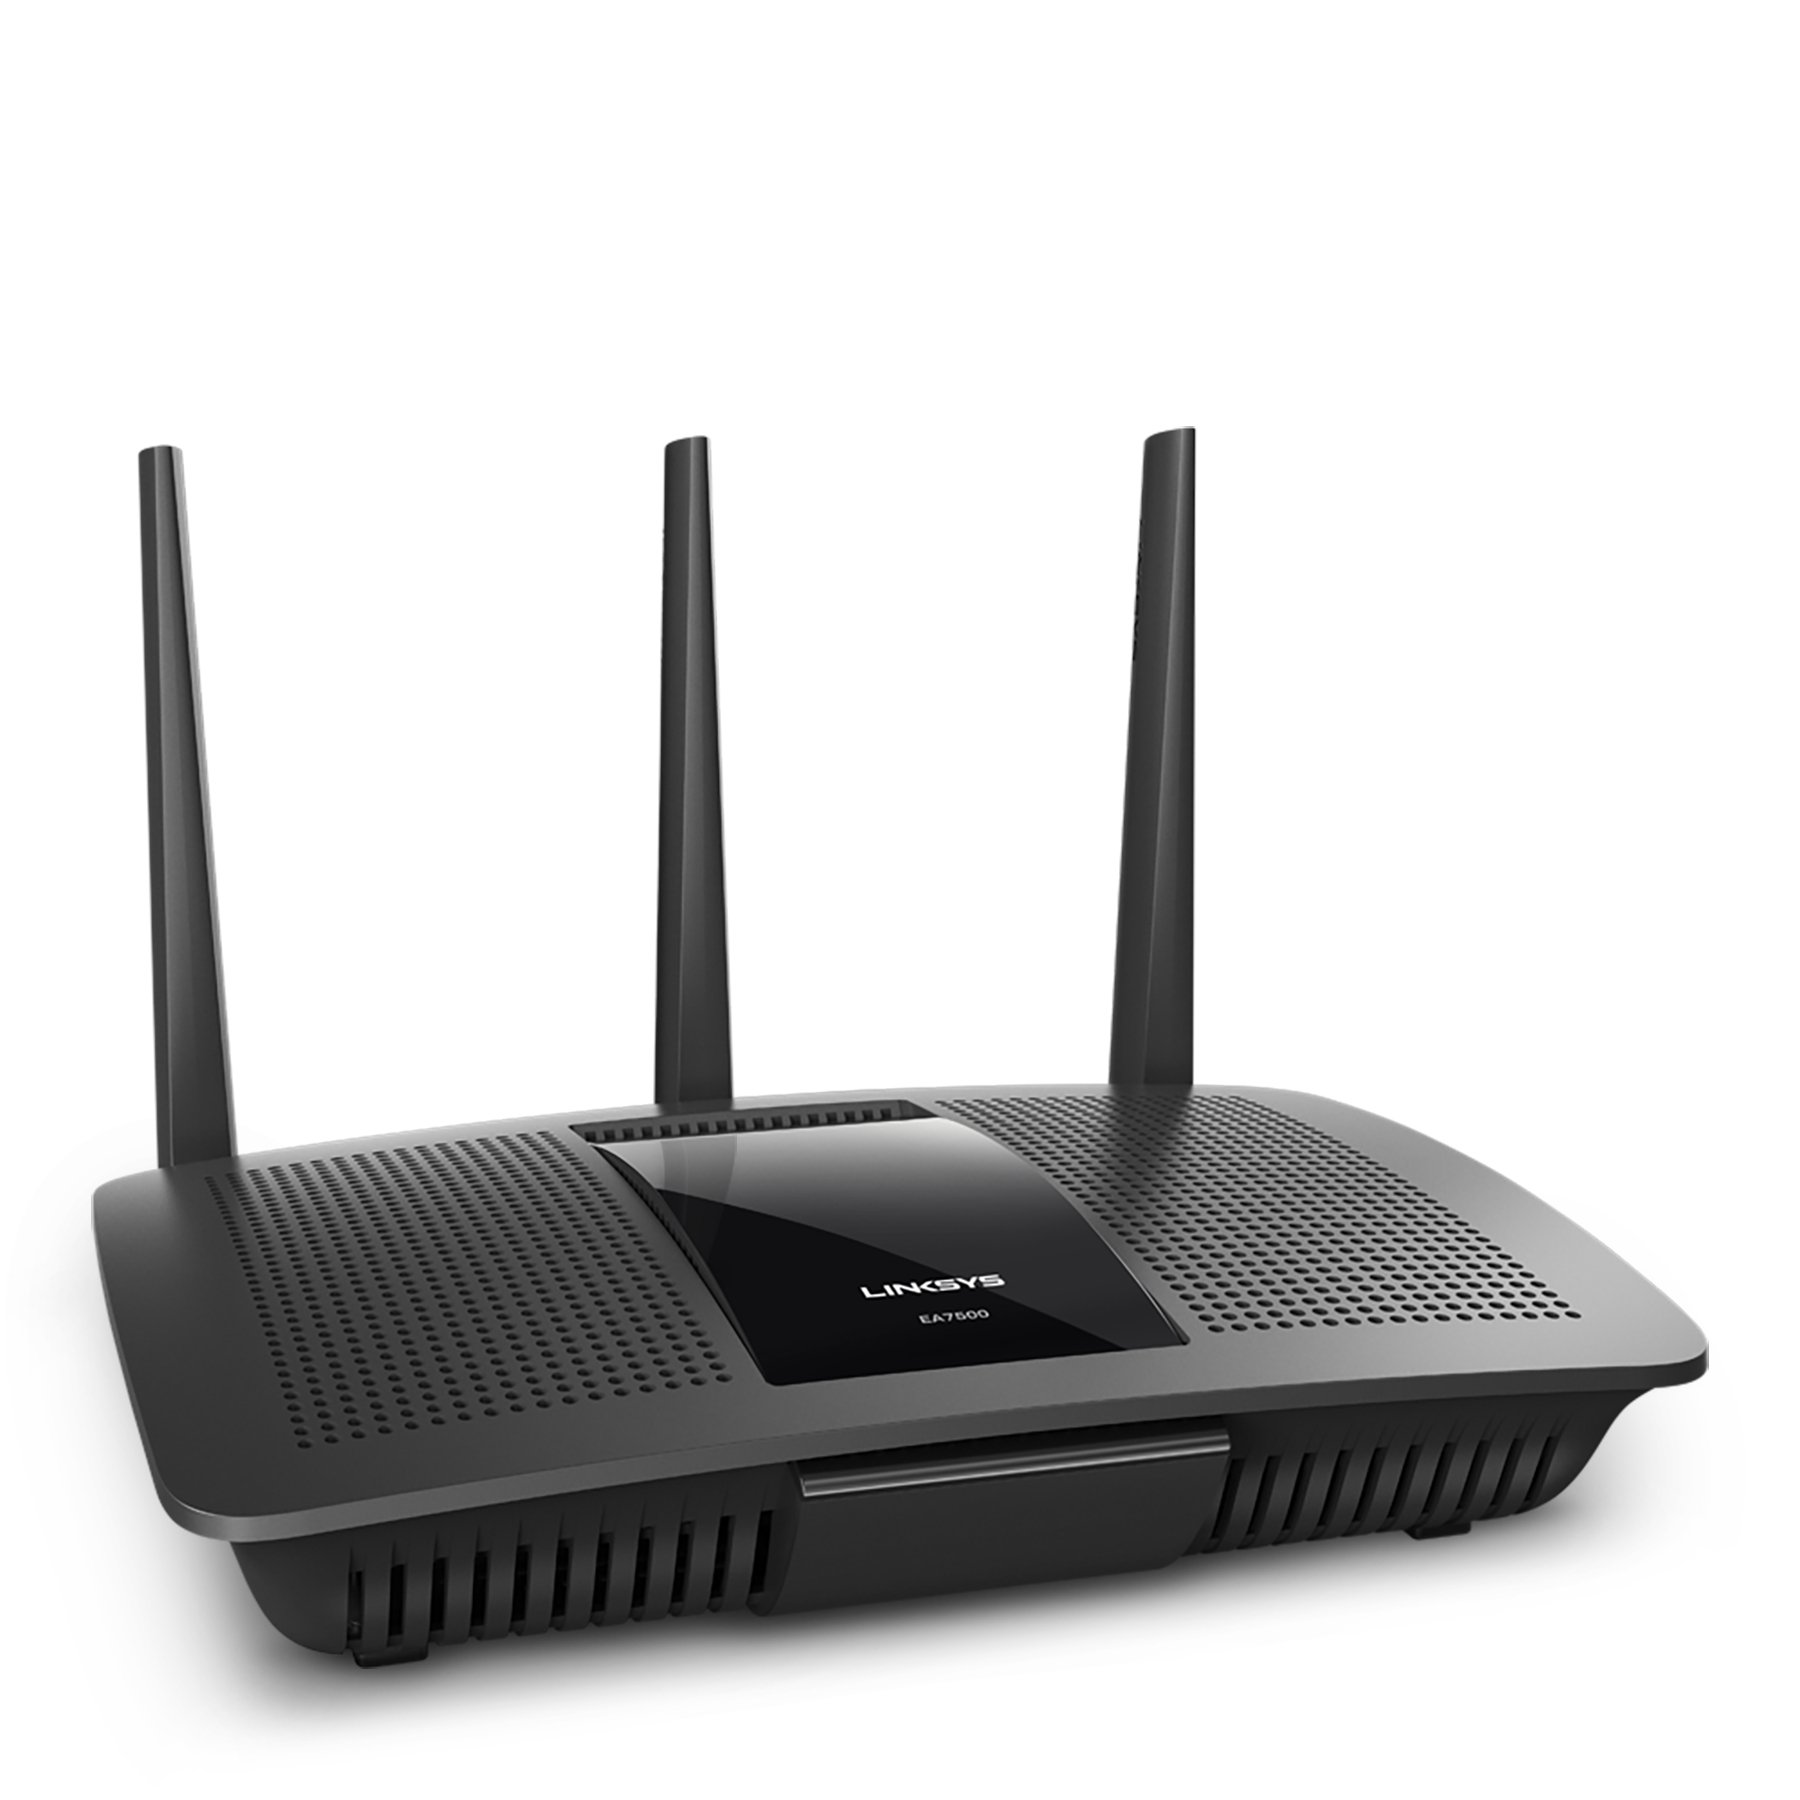 Linksys Dual-Band Wifi Router for Home (Max-Stream AC1900 MU-Mimo Fast Wireless Router) by Linksys